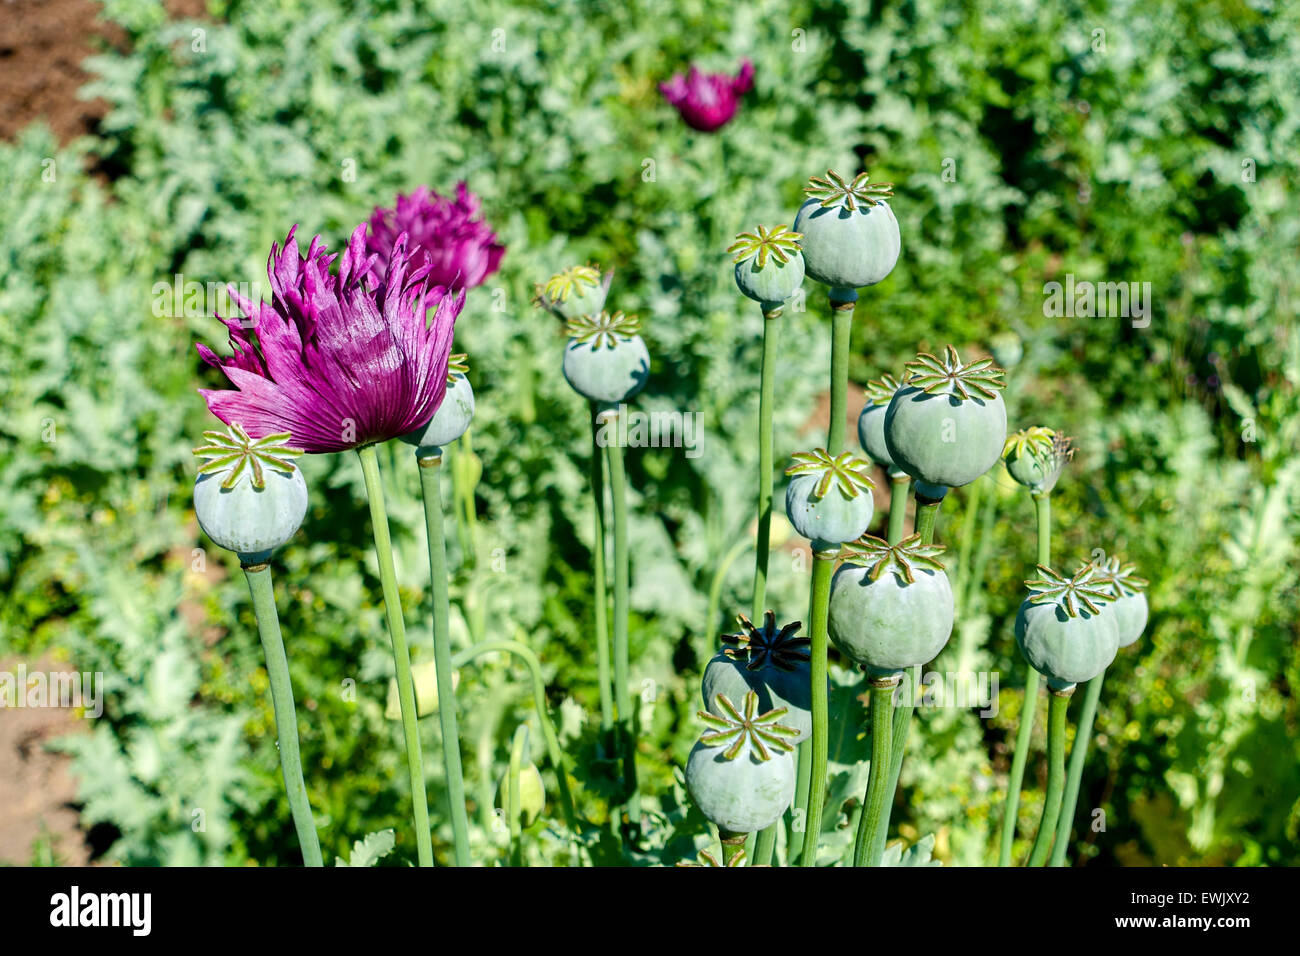 Heroin opium poppy stock photos heroin opium poppy stock images poppy flowers and seed heads opium drugs war on drugs heroin mightylinksfo Image collections